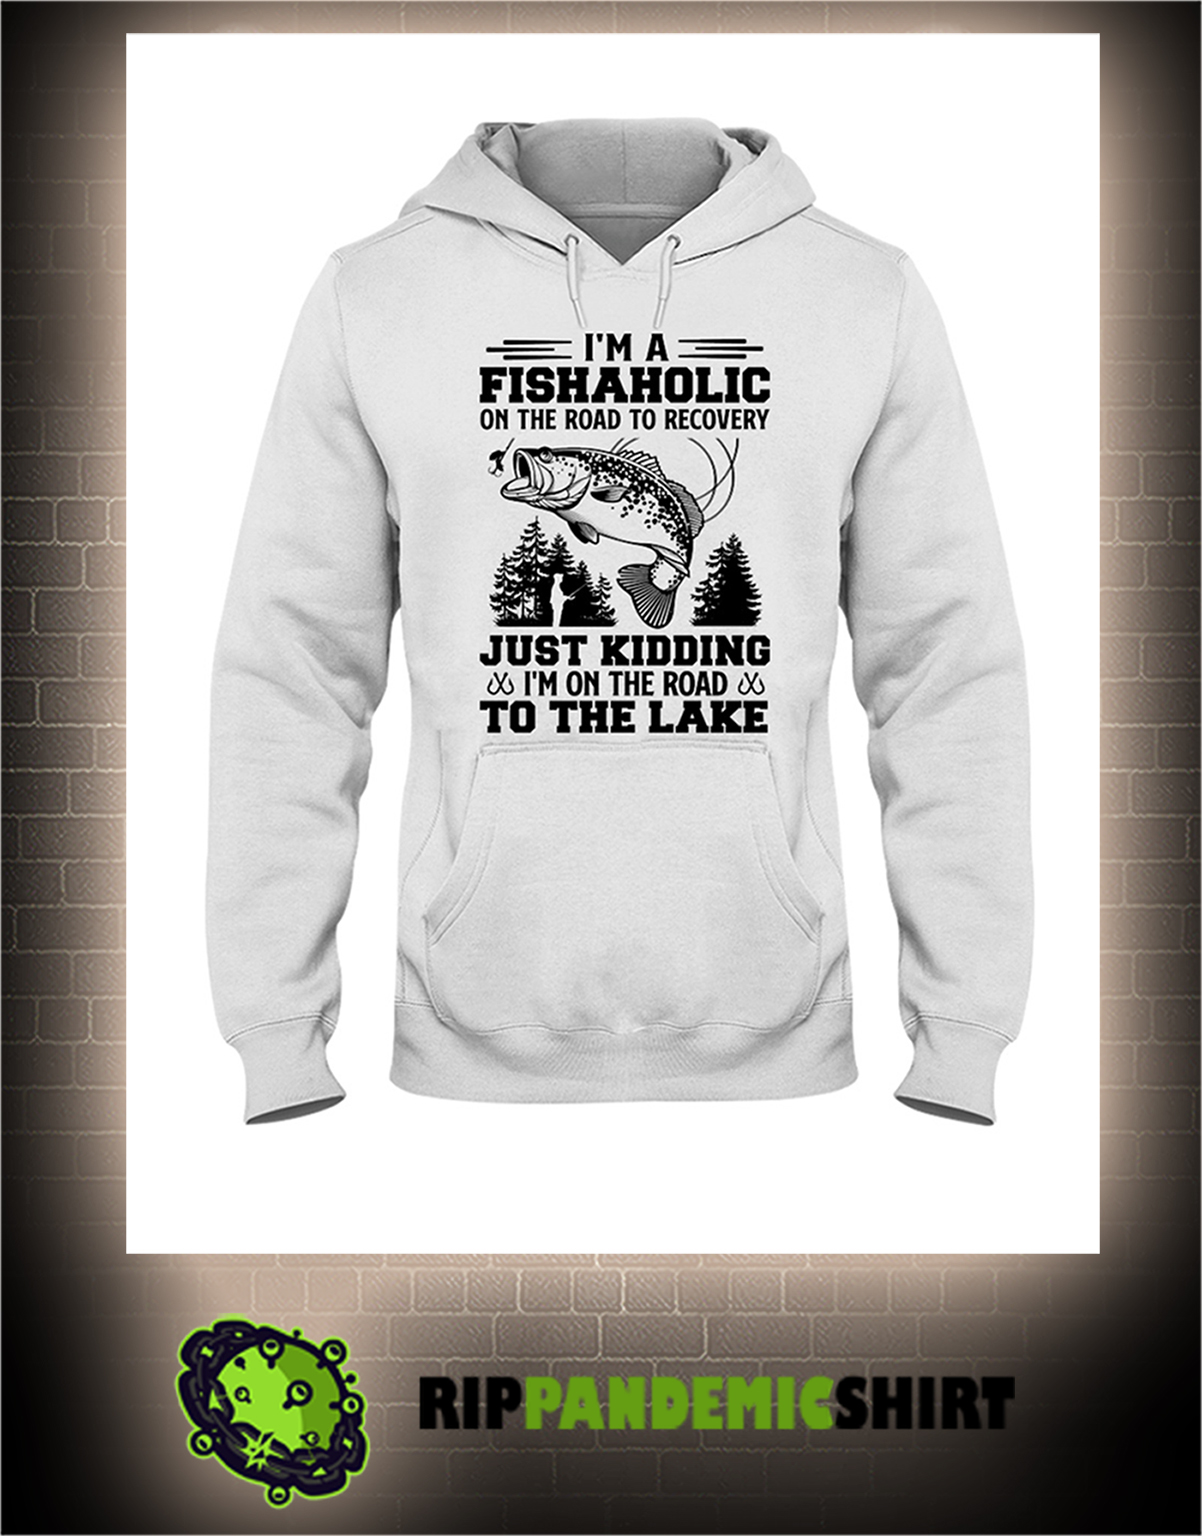 Fishing I'm a fishaholic on the road to recovery hoodie